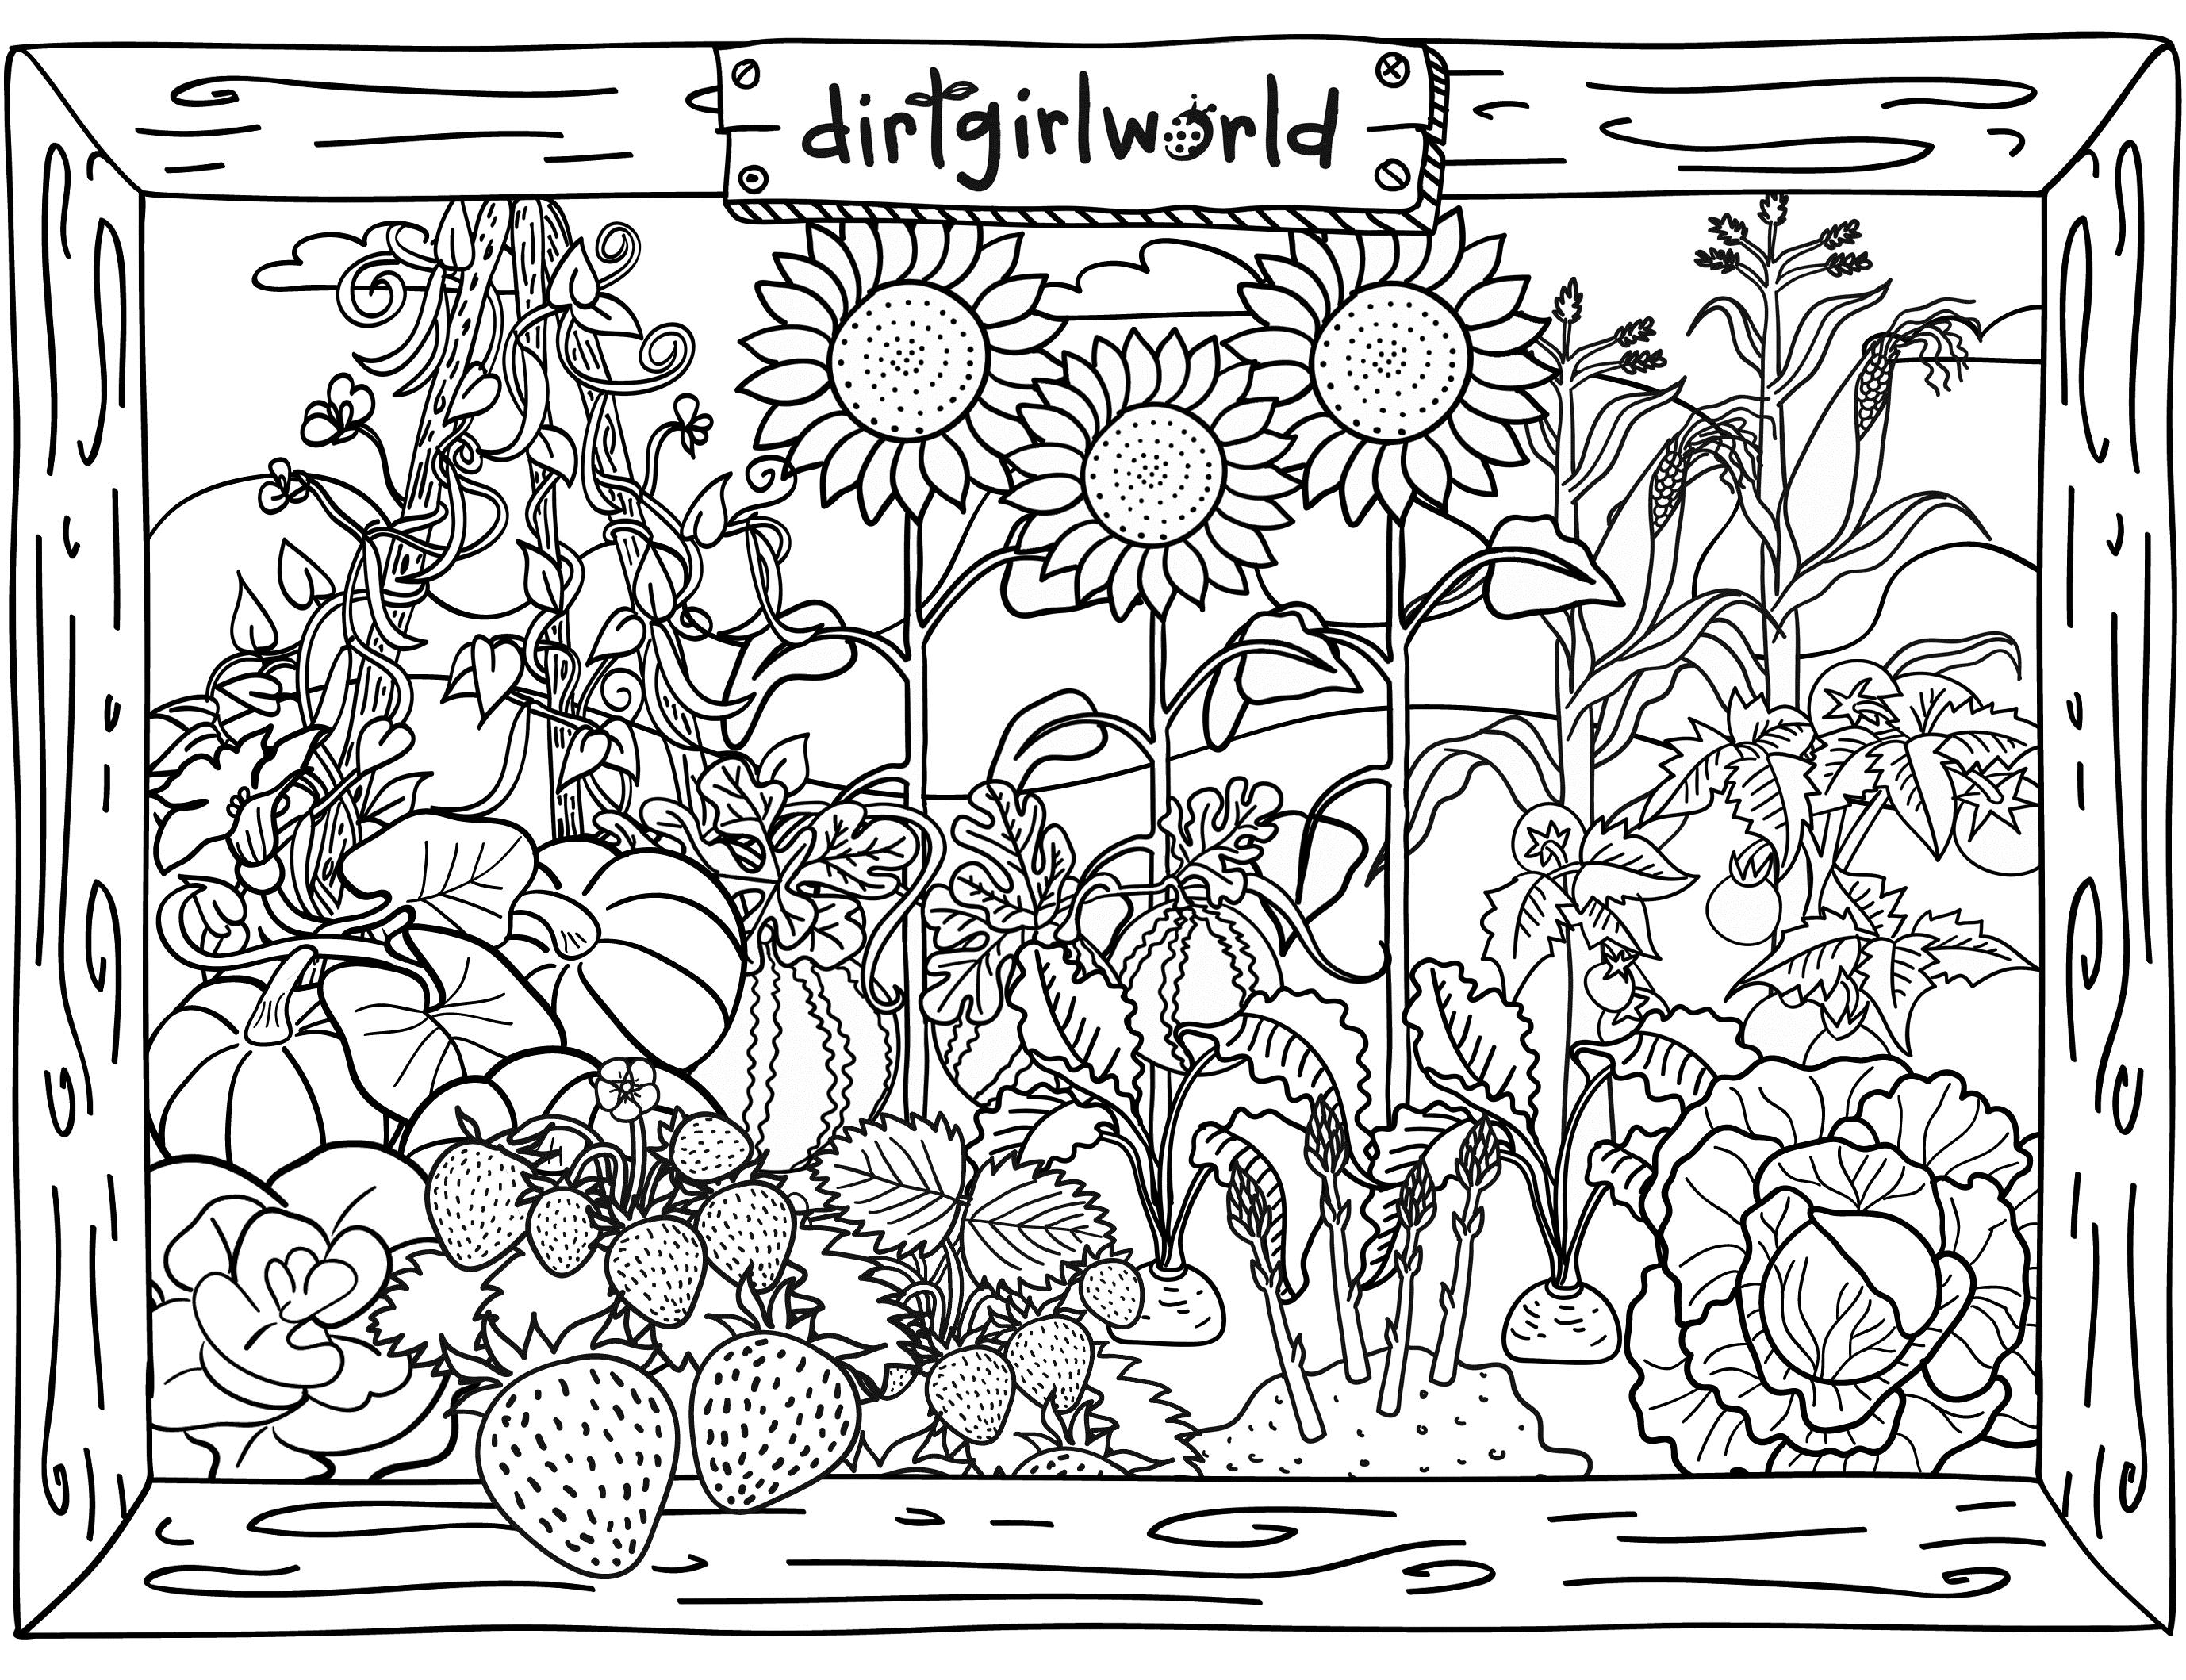 coloring pages garden flower garden coloring pages to download and print for free coloring pages garden